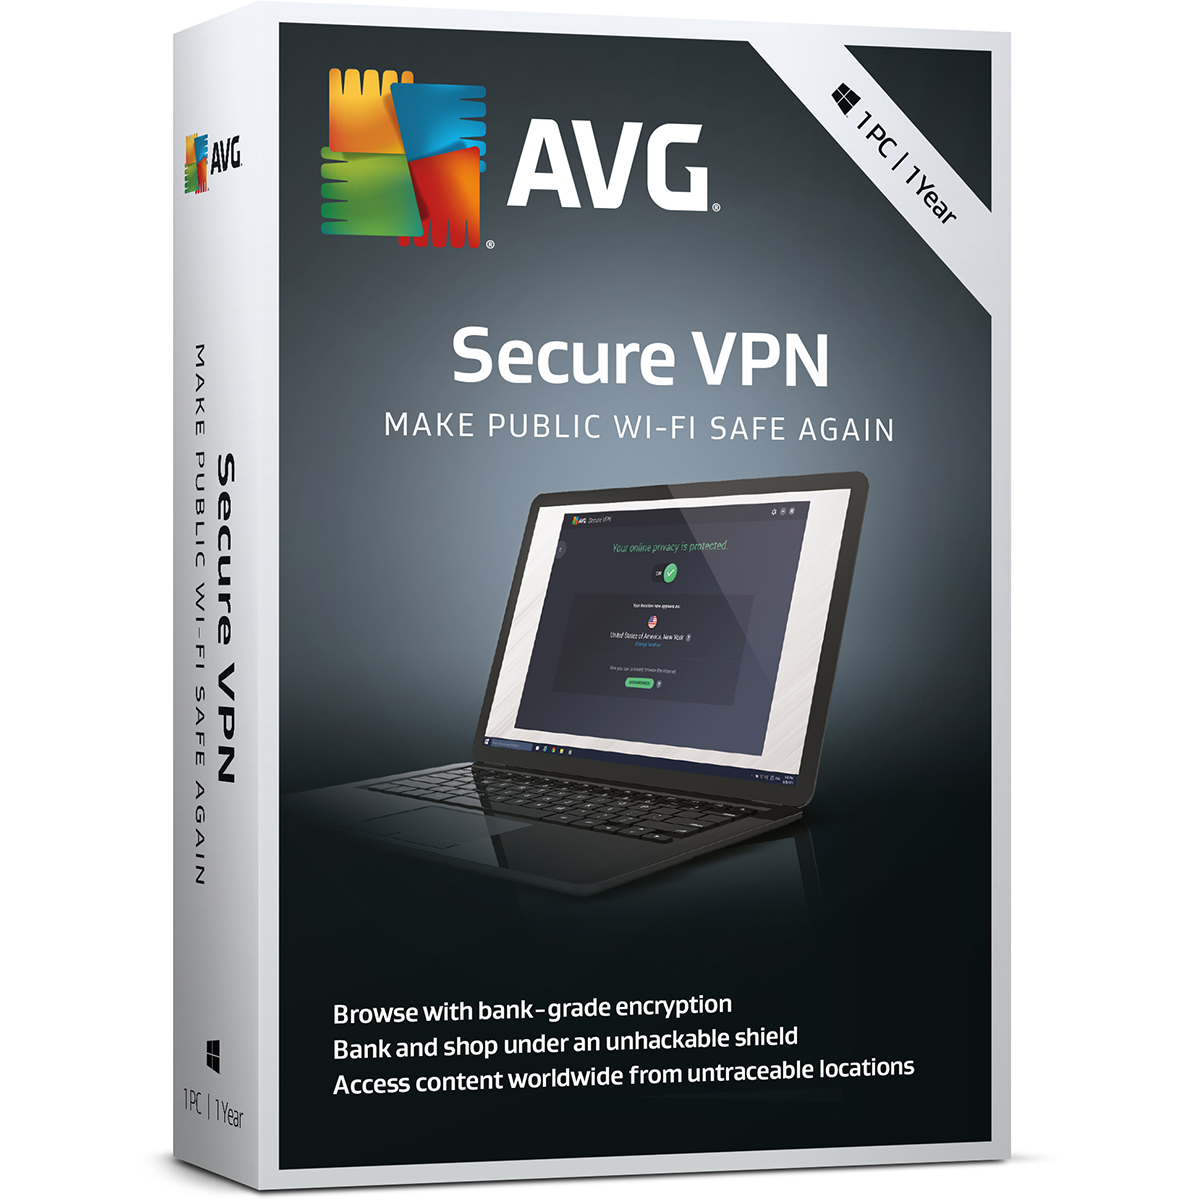 AVG Secure VPN 1 Year License ( 1 Active Connection at a time )